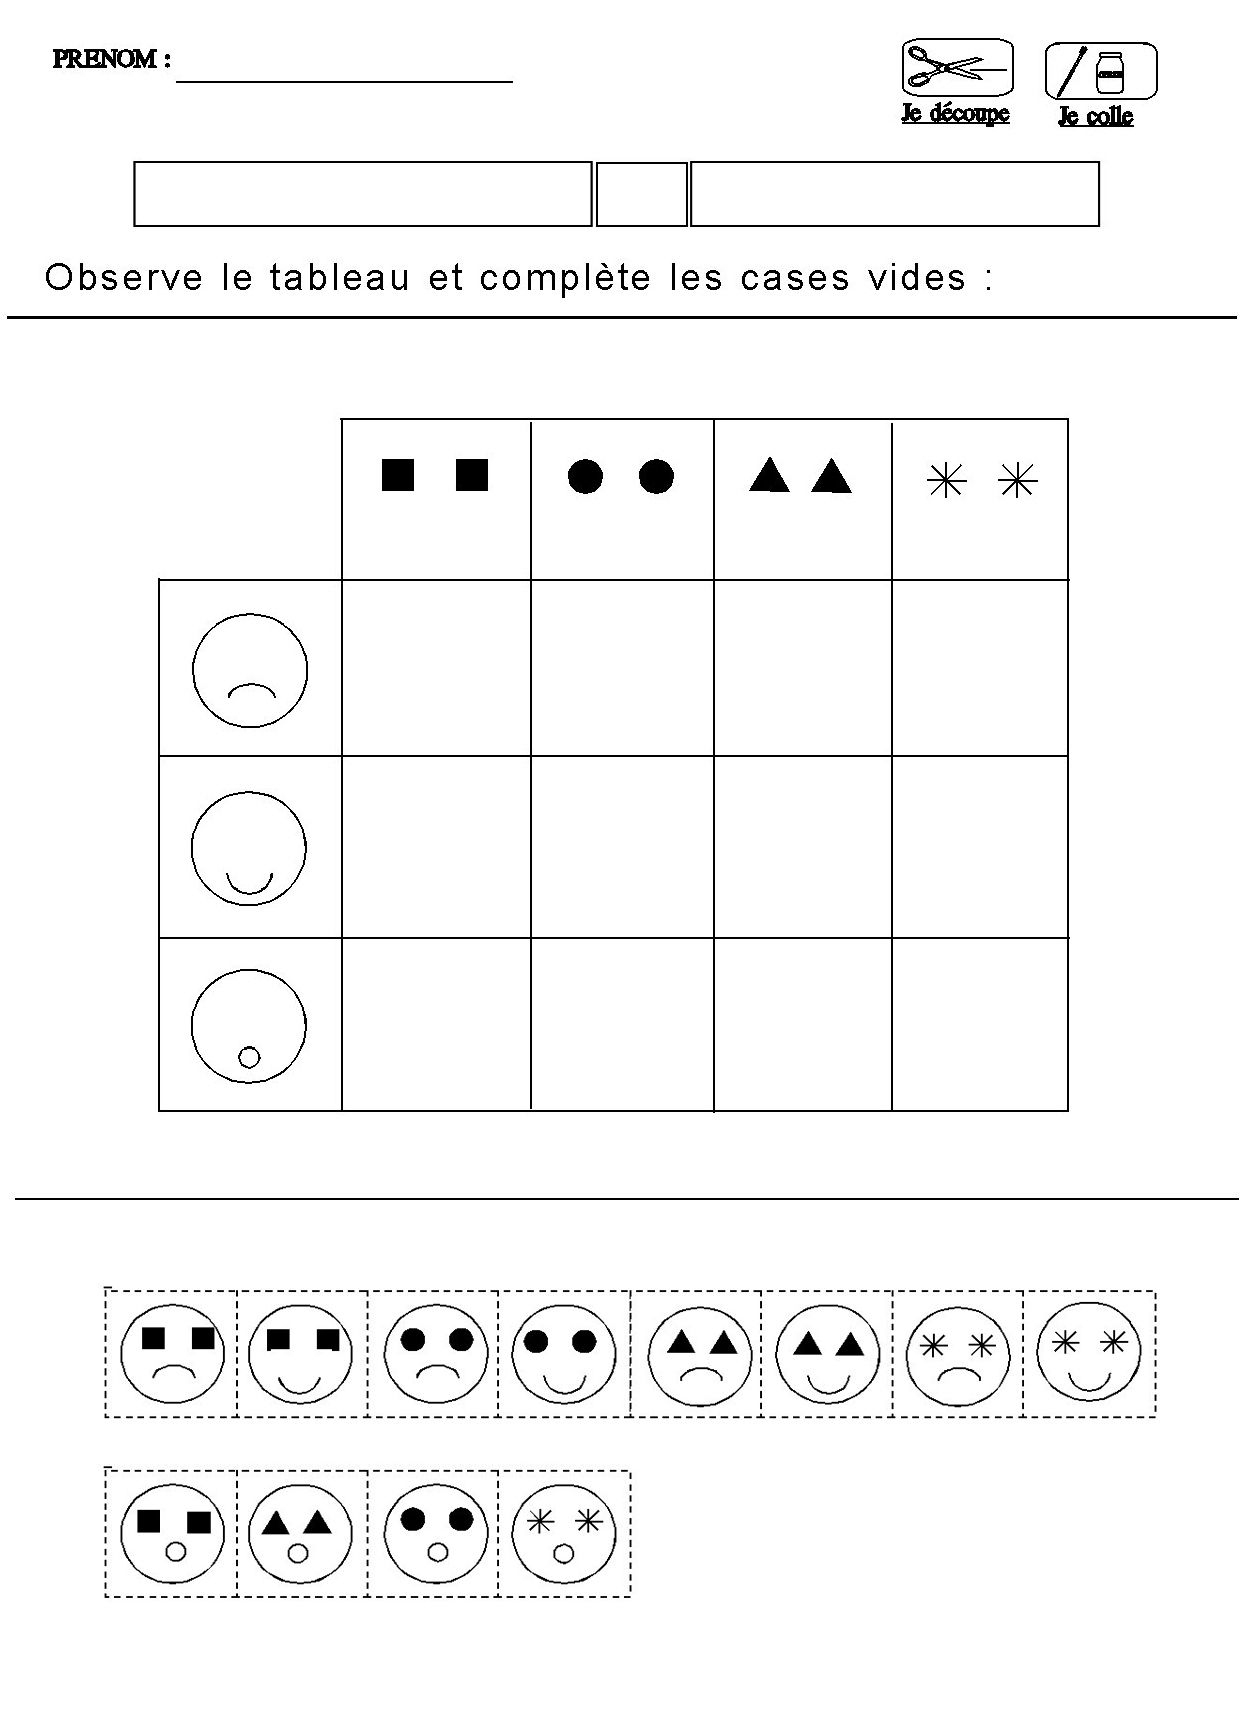 Tableau Double Entrees Pour Maternelle Moyenne Section encequiconcerne Exercice Maternelle Moyenne Section